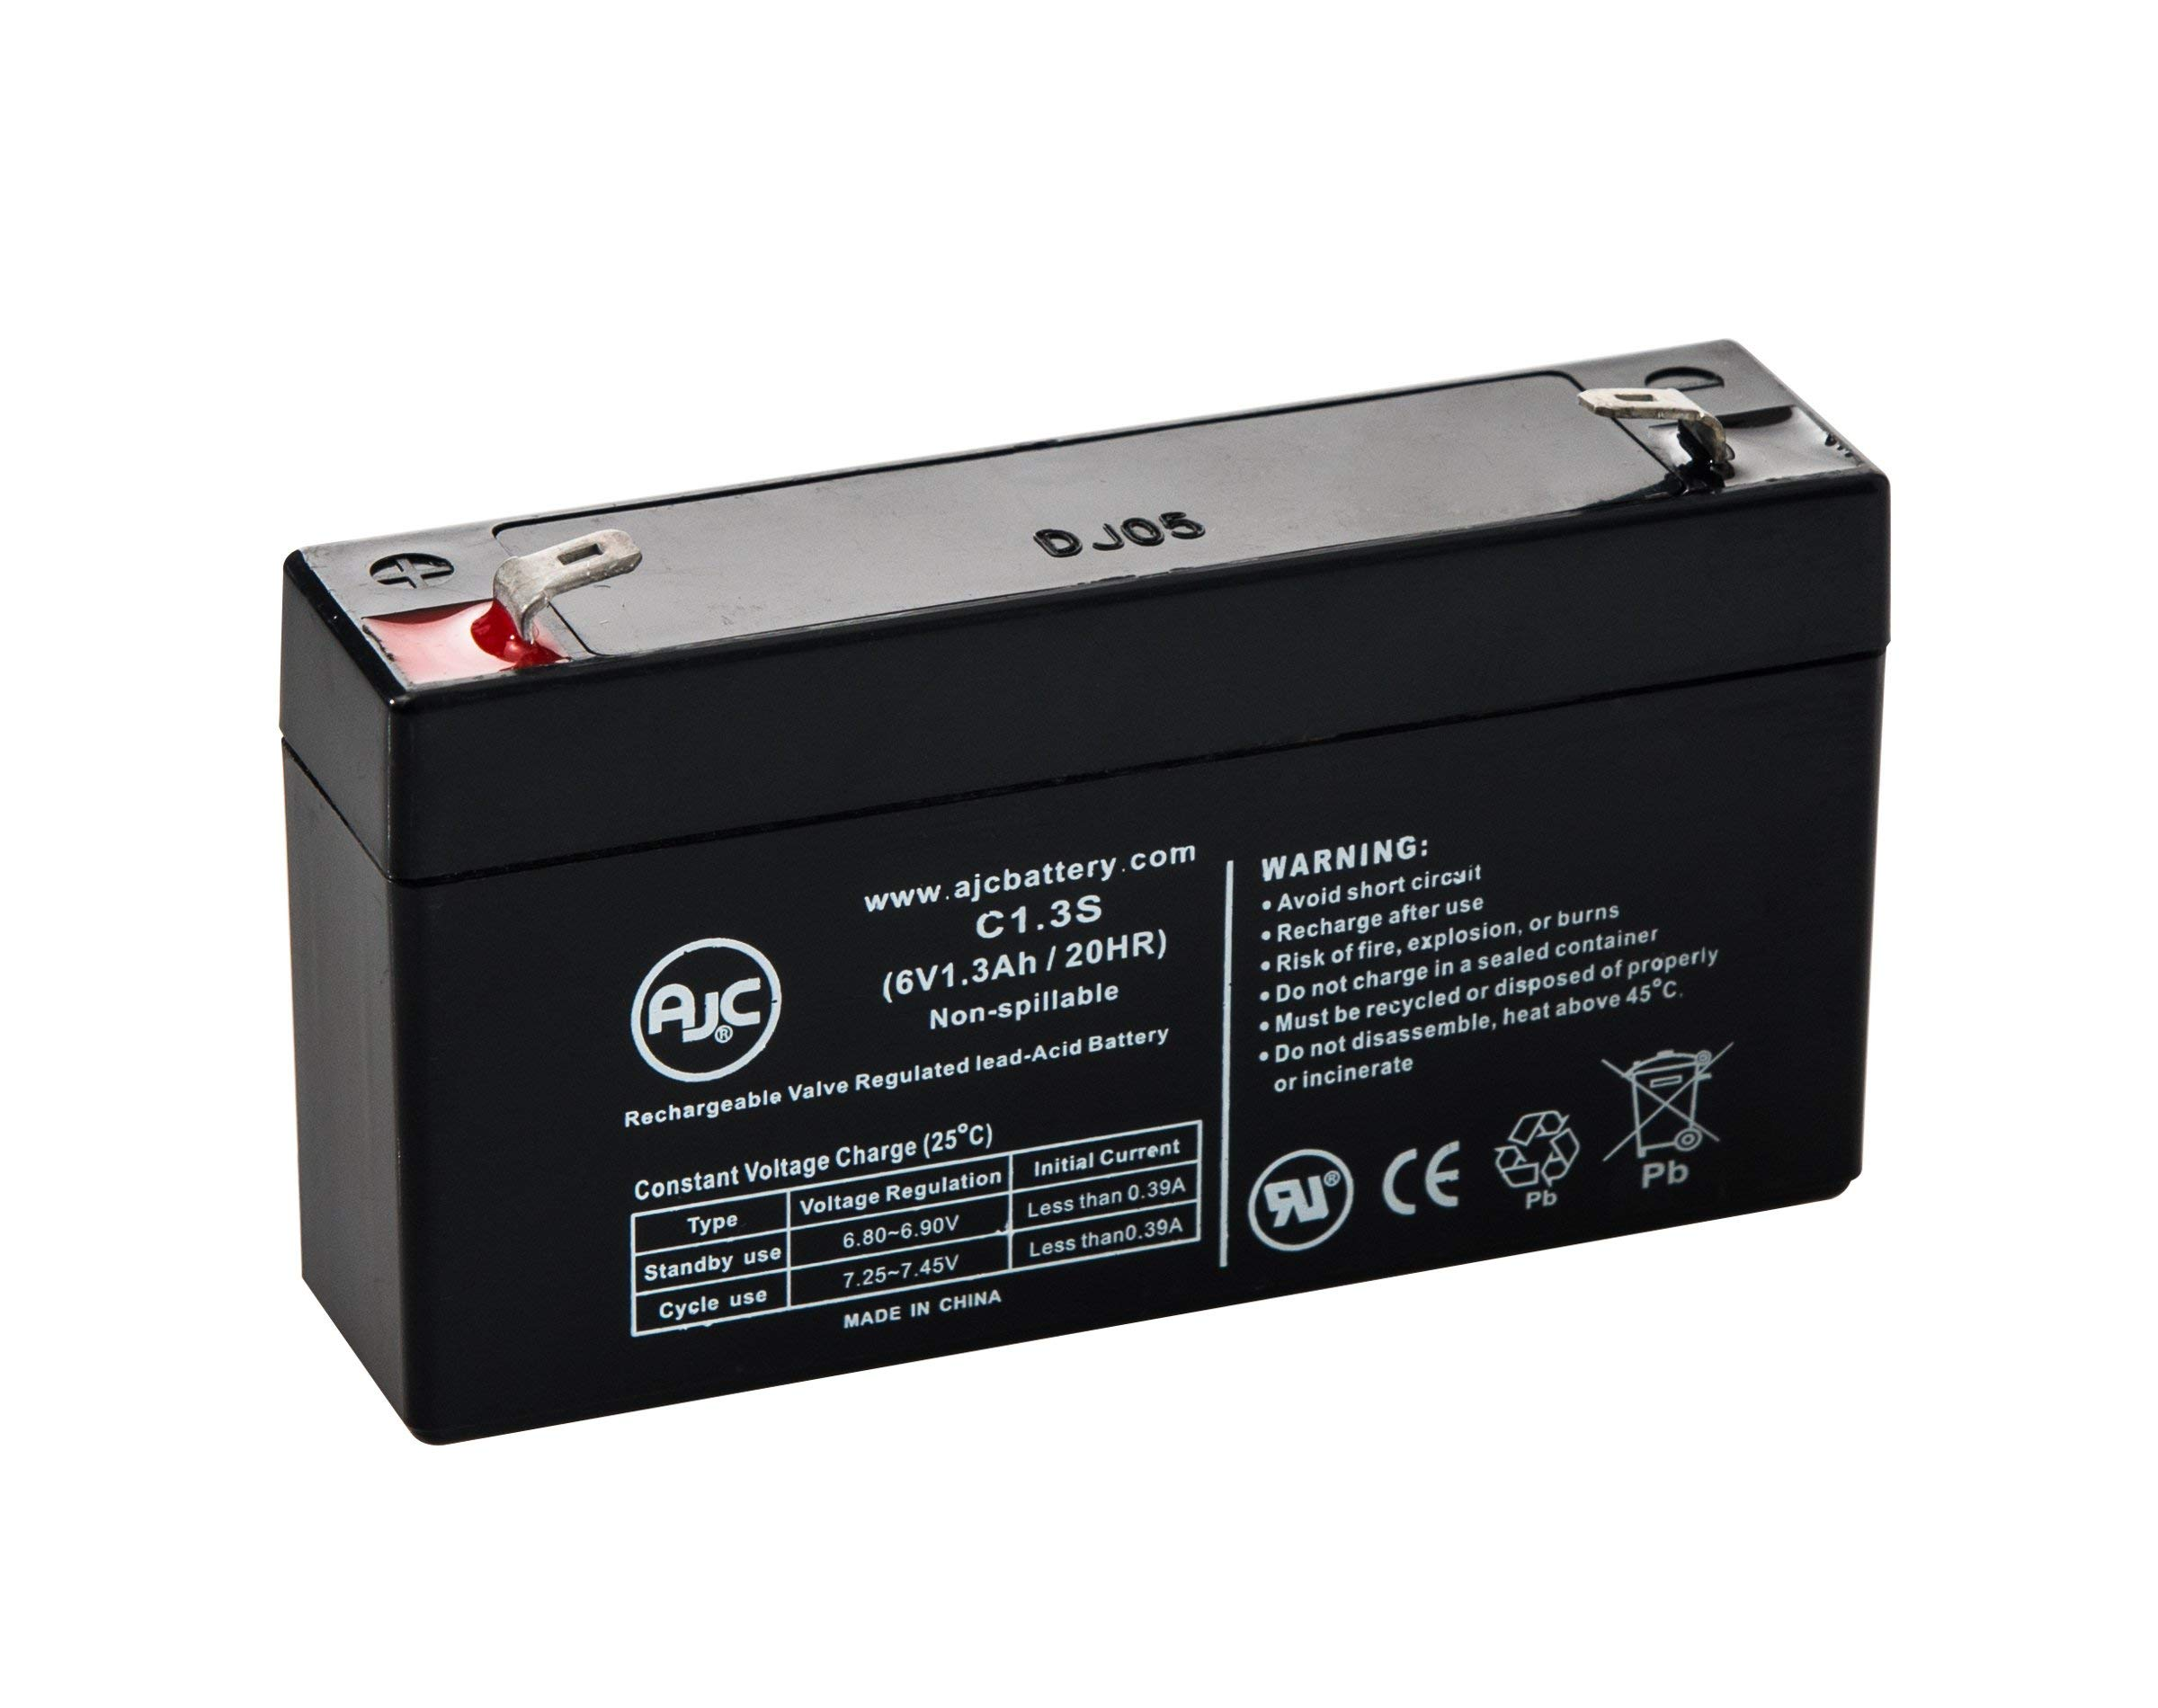 GE Simon XT 6V 1.3Ah Alarm Battery Compatible Replacement by AJC